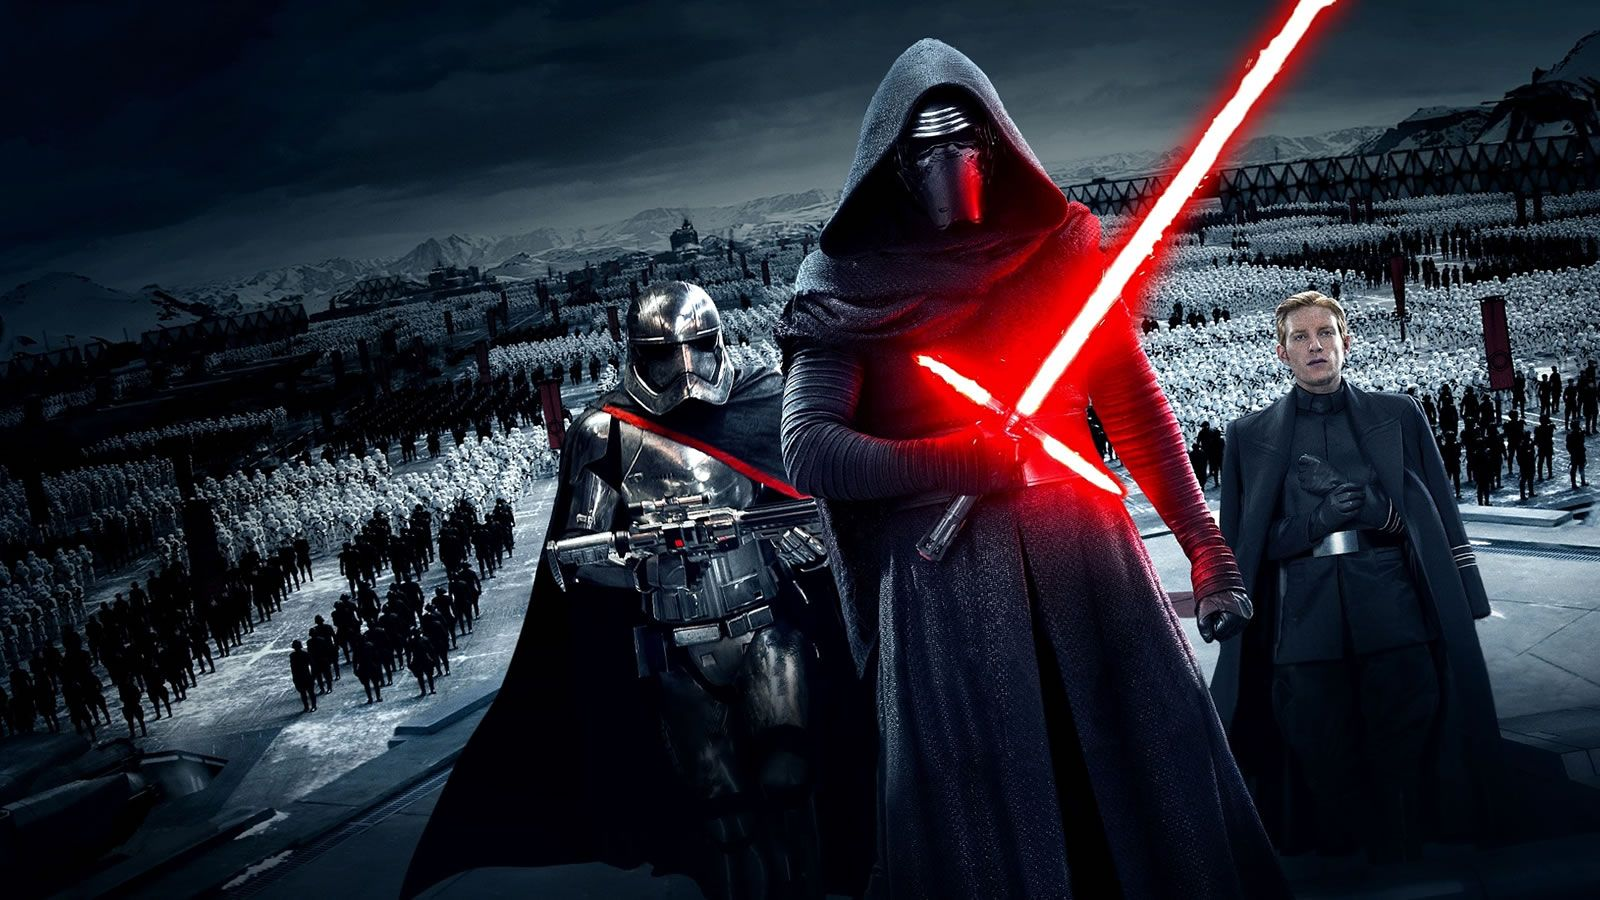 Star Wars The Force Awakens Backgrounds In 2020 Star Wars Wallpaper Ren Star Wars Star Wars Episode Vii